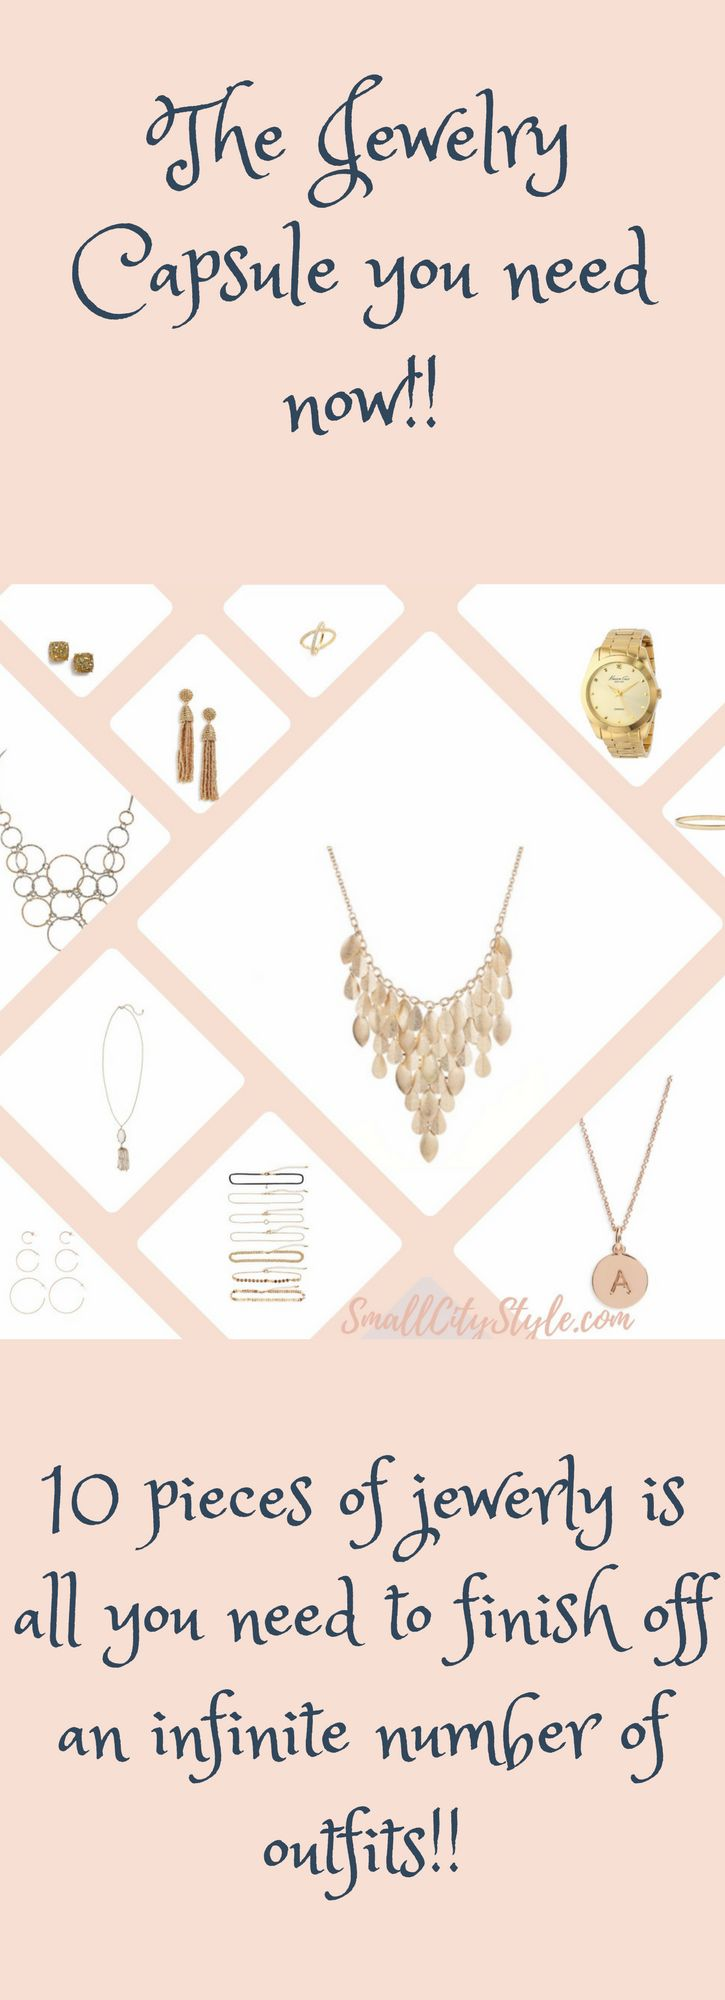 10 pieces of jewelry make up this jewelry capsule!  See what you need to finish off any outfit!